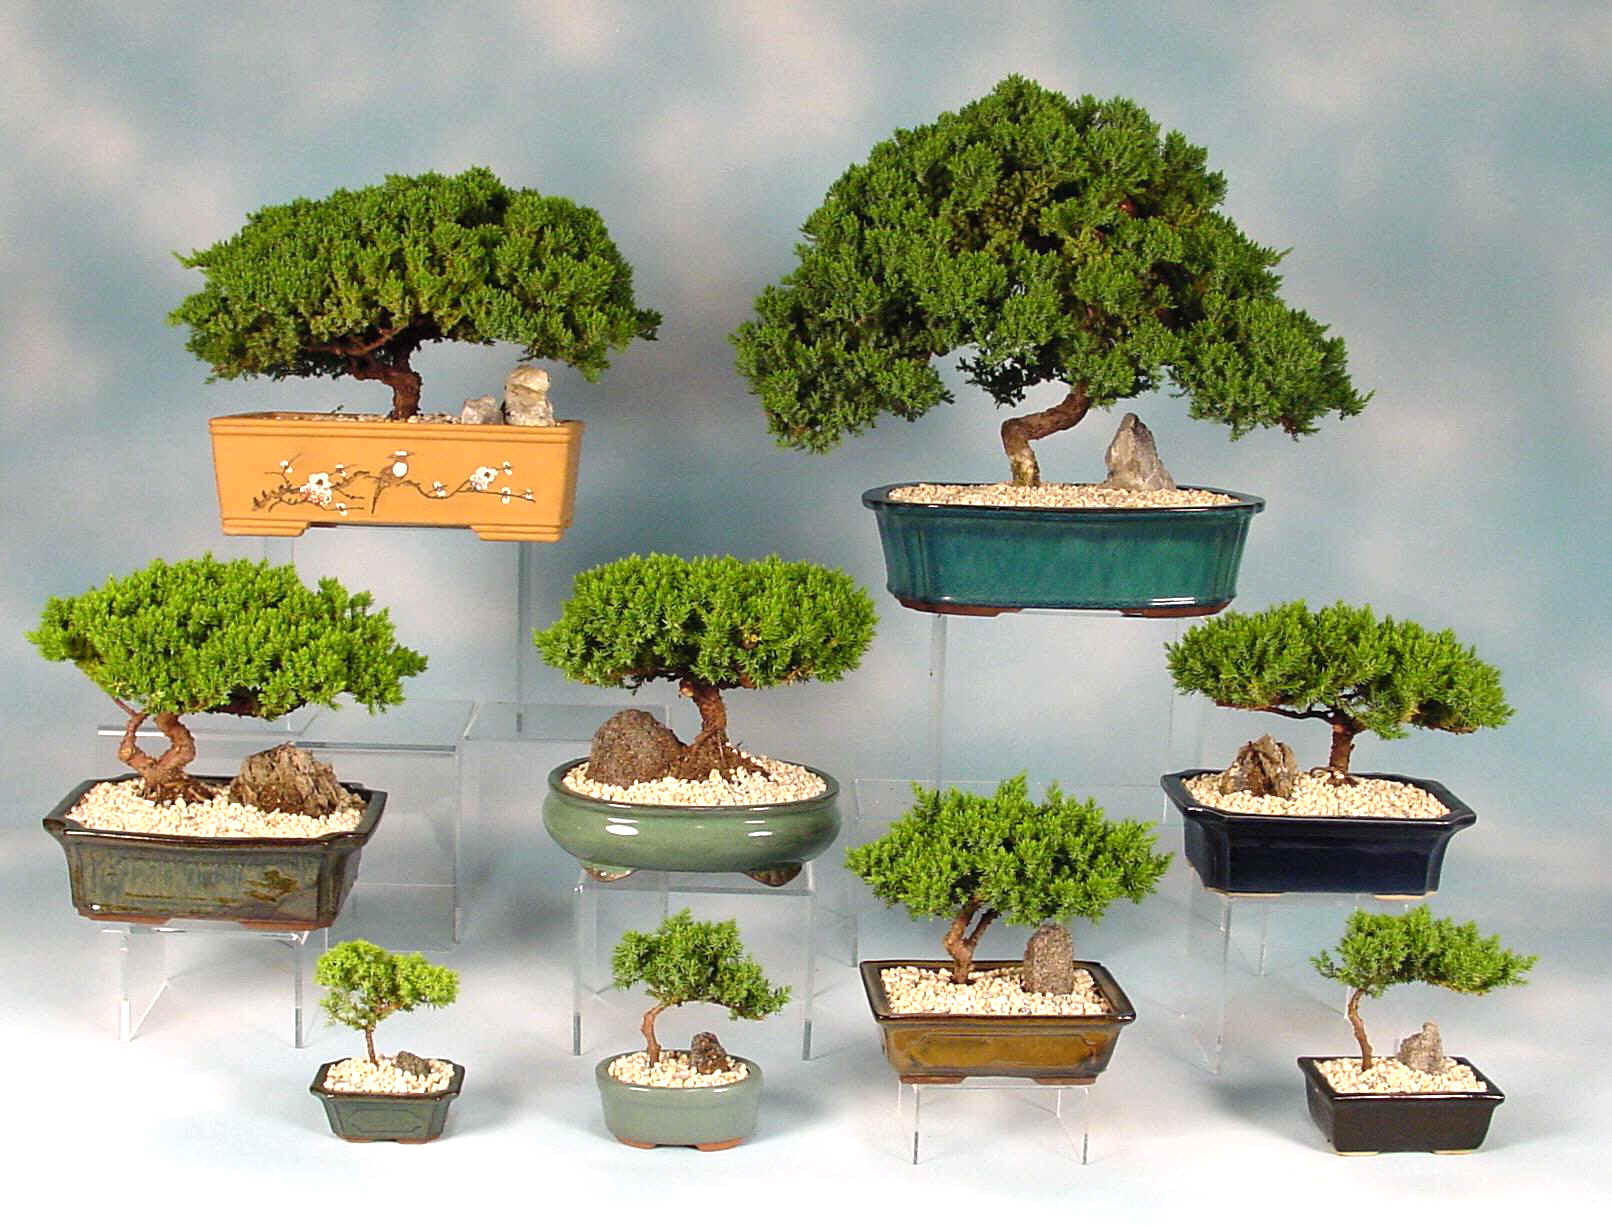 Decocasa en colombia interiores zen en busca del bons i for Bonsai de jardin